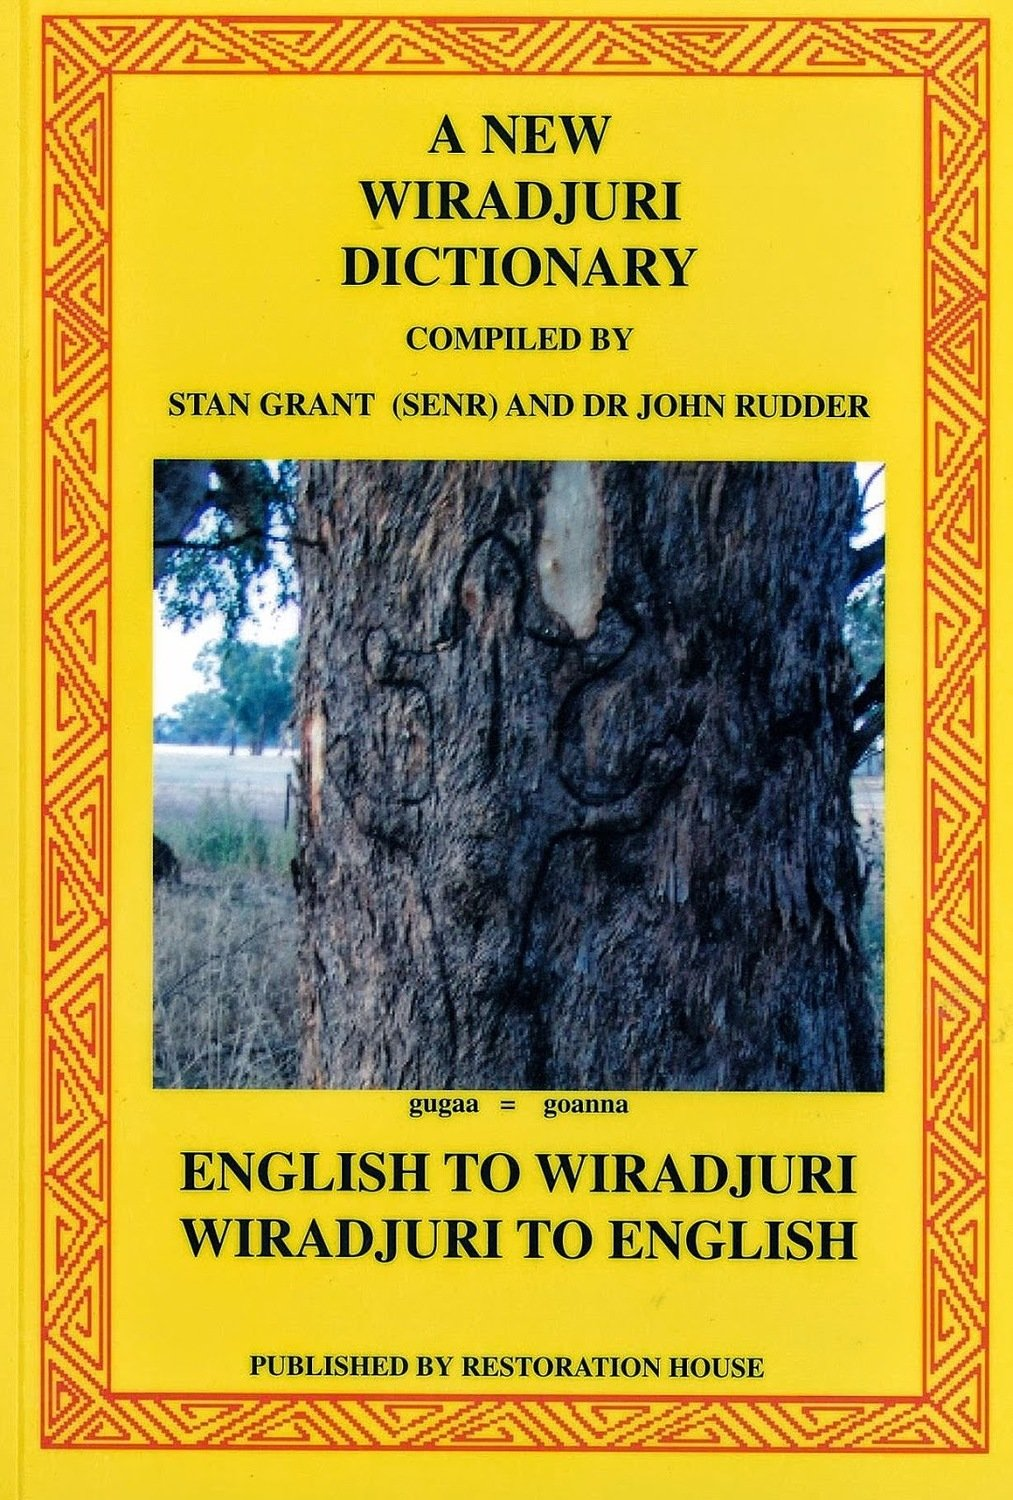 A New Wiradjuri Dictionary (2010)